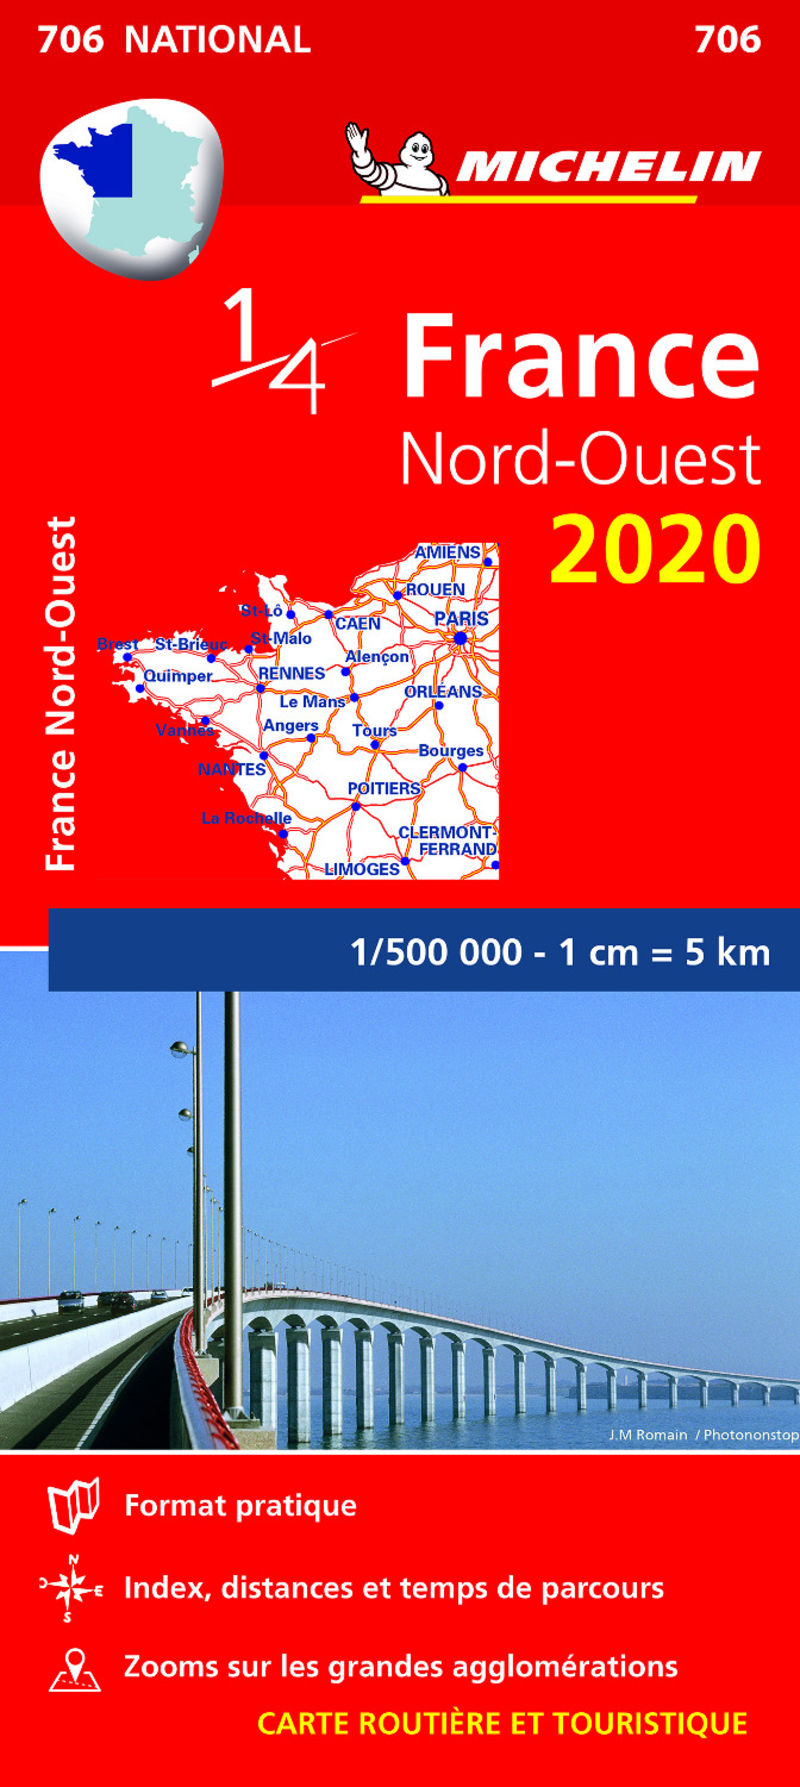 MAPA NATIONAL FRANCIA NORD-OUEST 706 (2020)